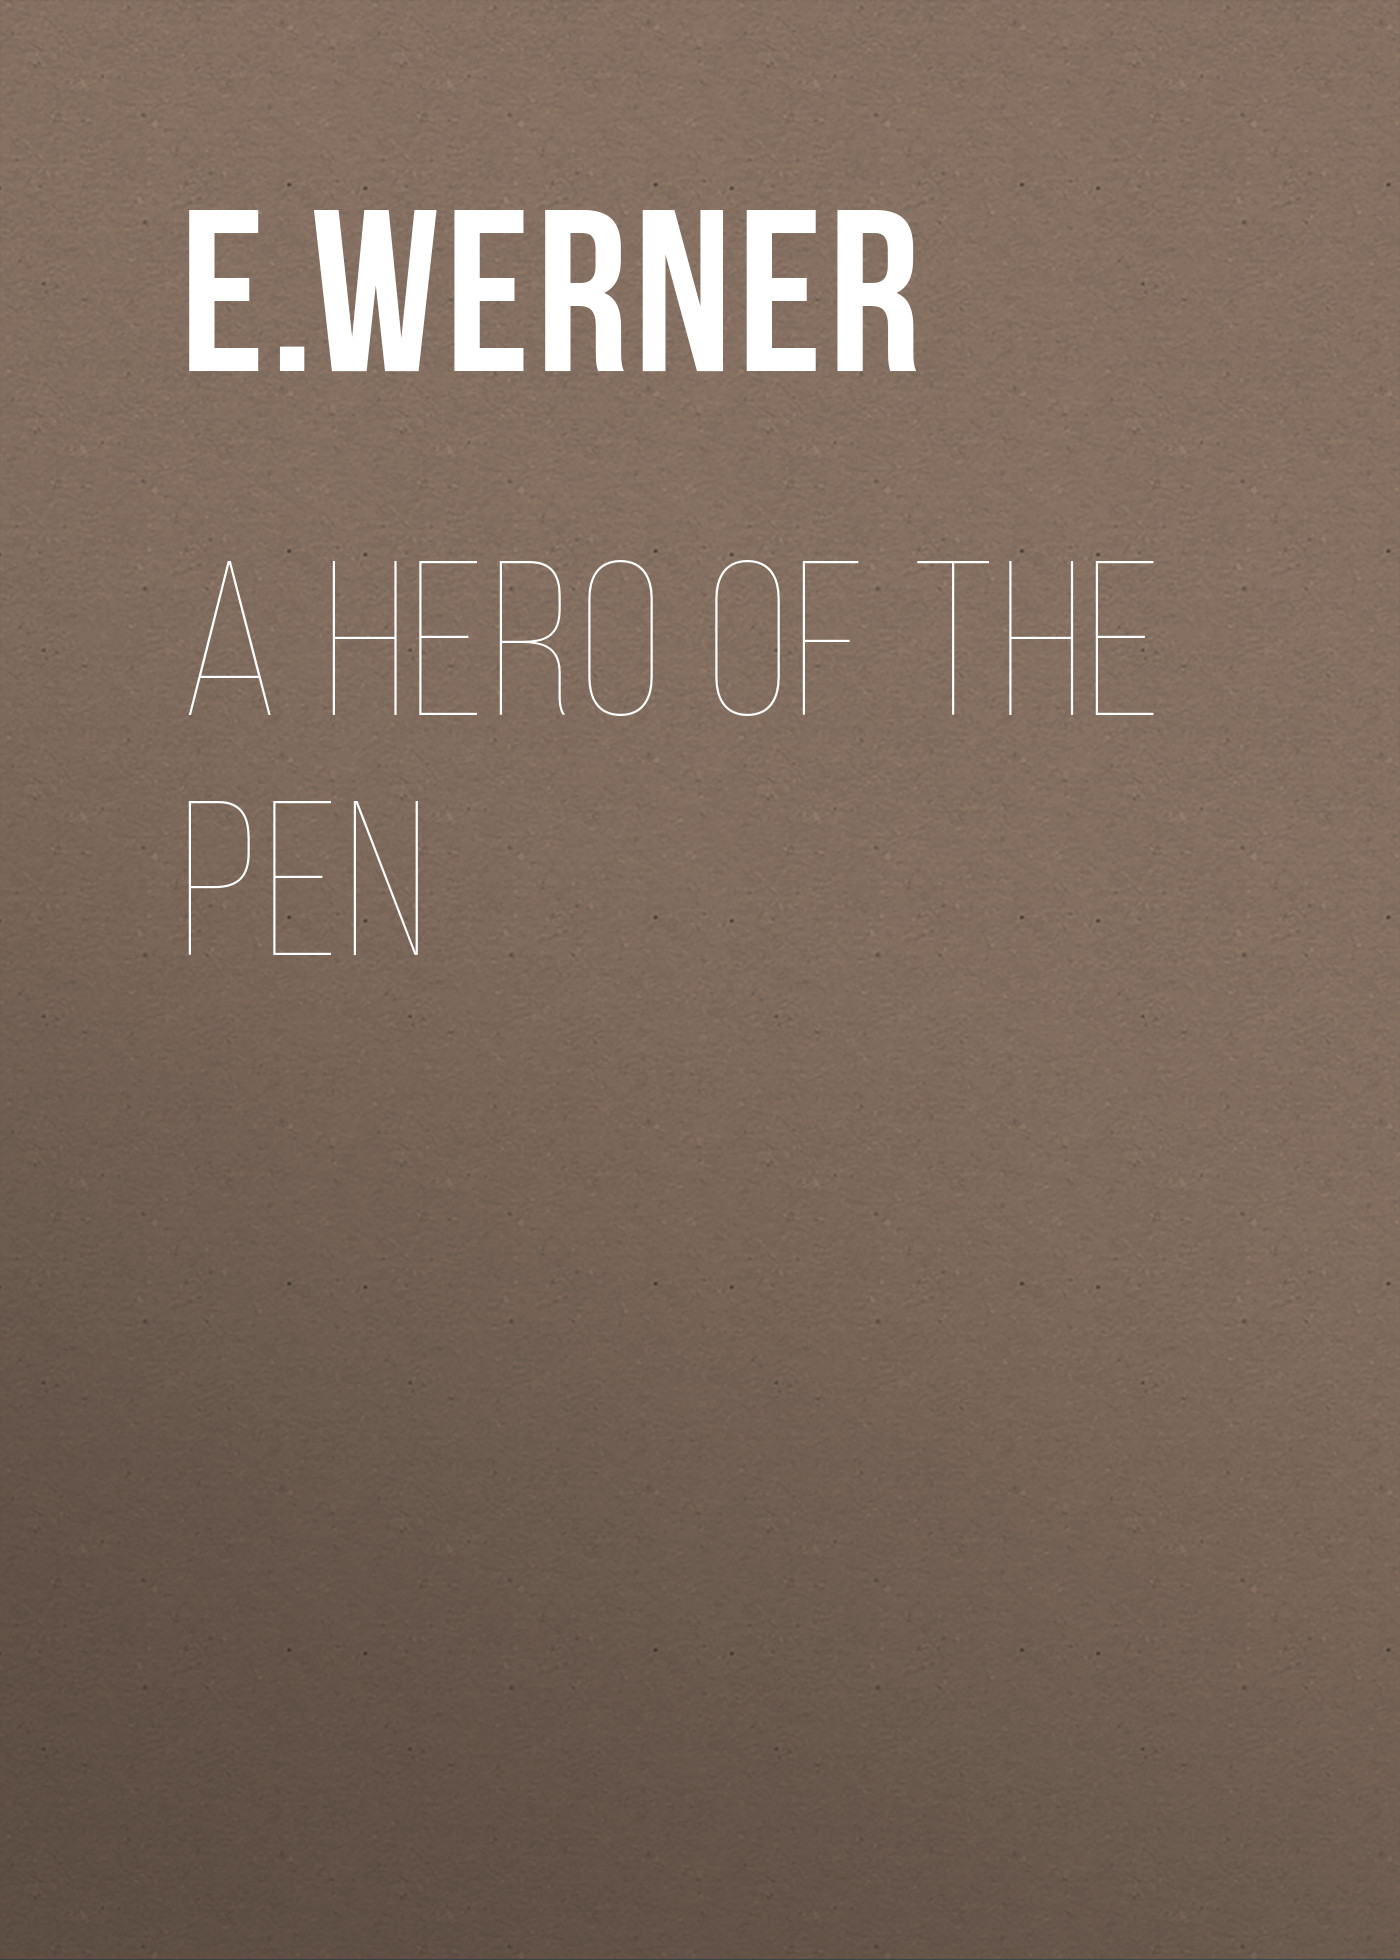 E. Werner A Hero of the Pen hero 9075 iridium black nib smooth fountain pen office student use